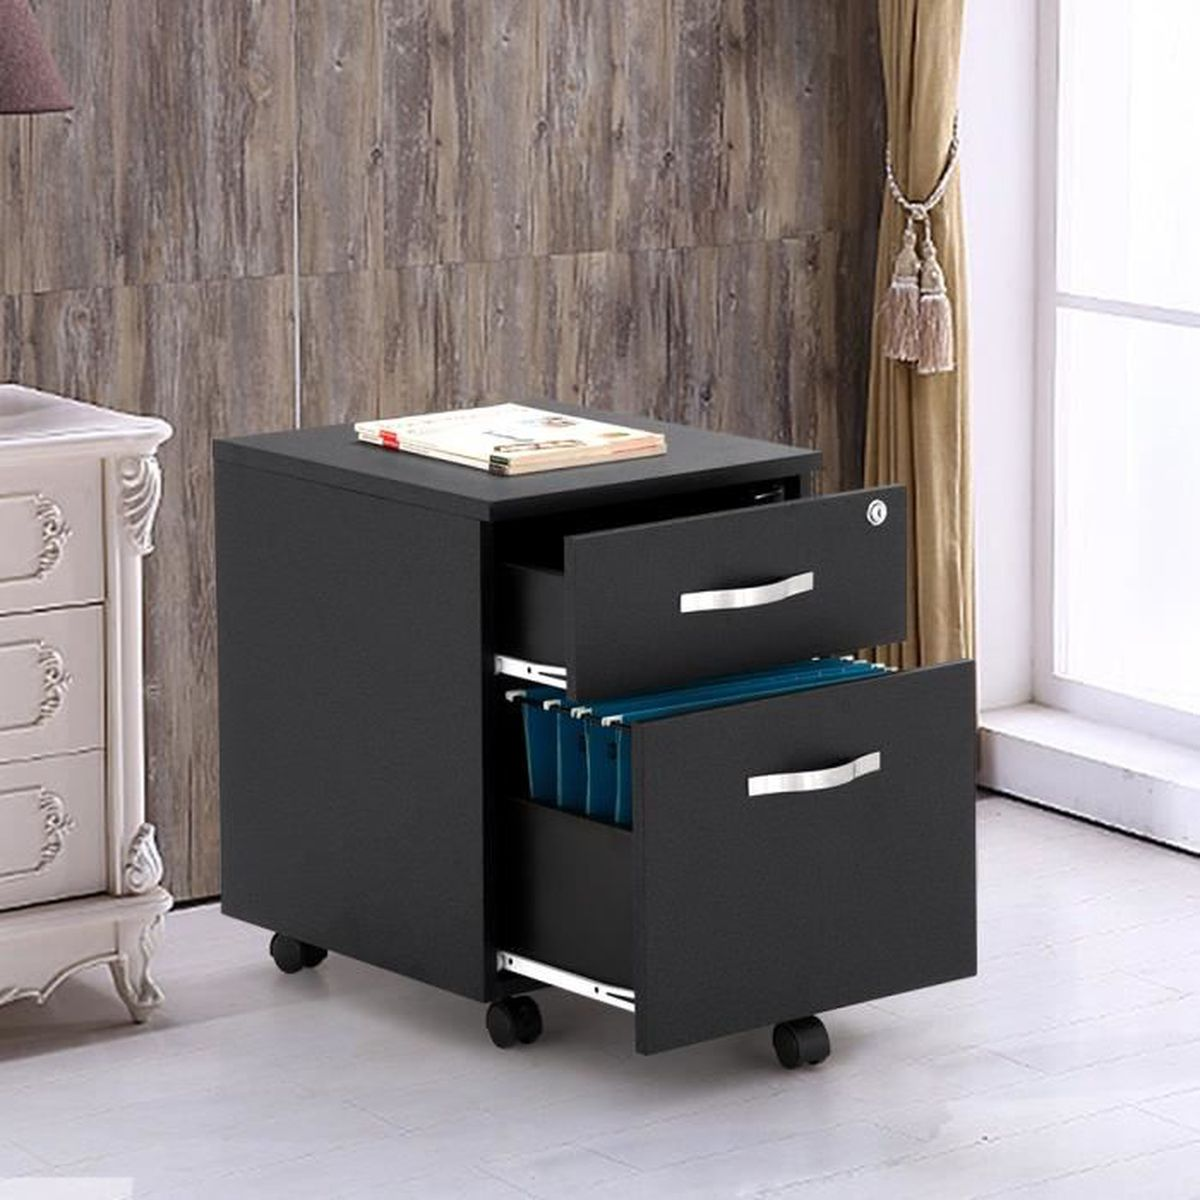 songmics mdf caisson de bureau caisson roulant armoires basses 2 tiroirs pour dossiers. Black Bedroom Furniture Sets. Home Design Ideas